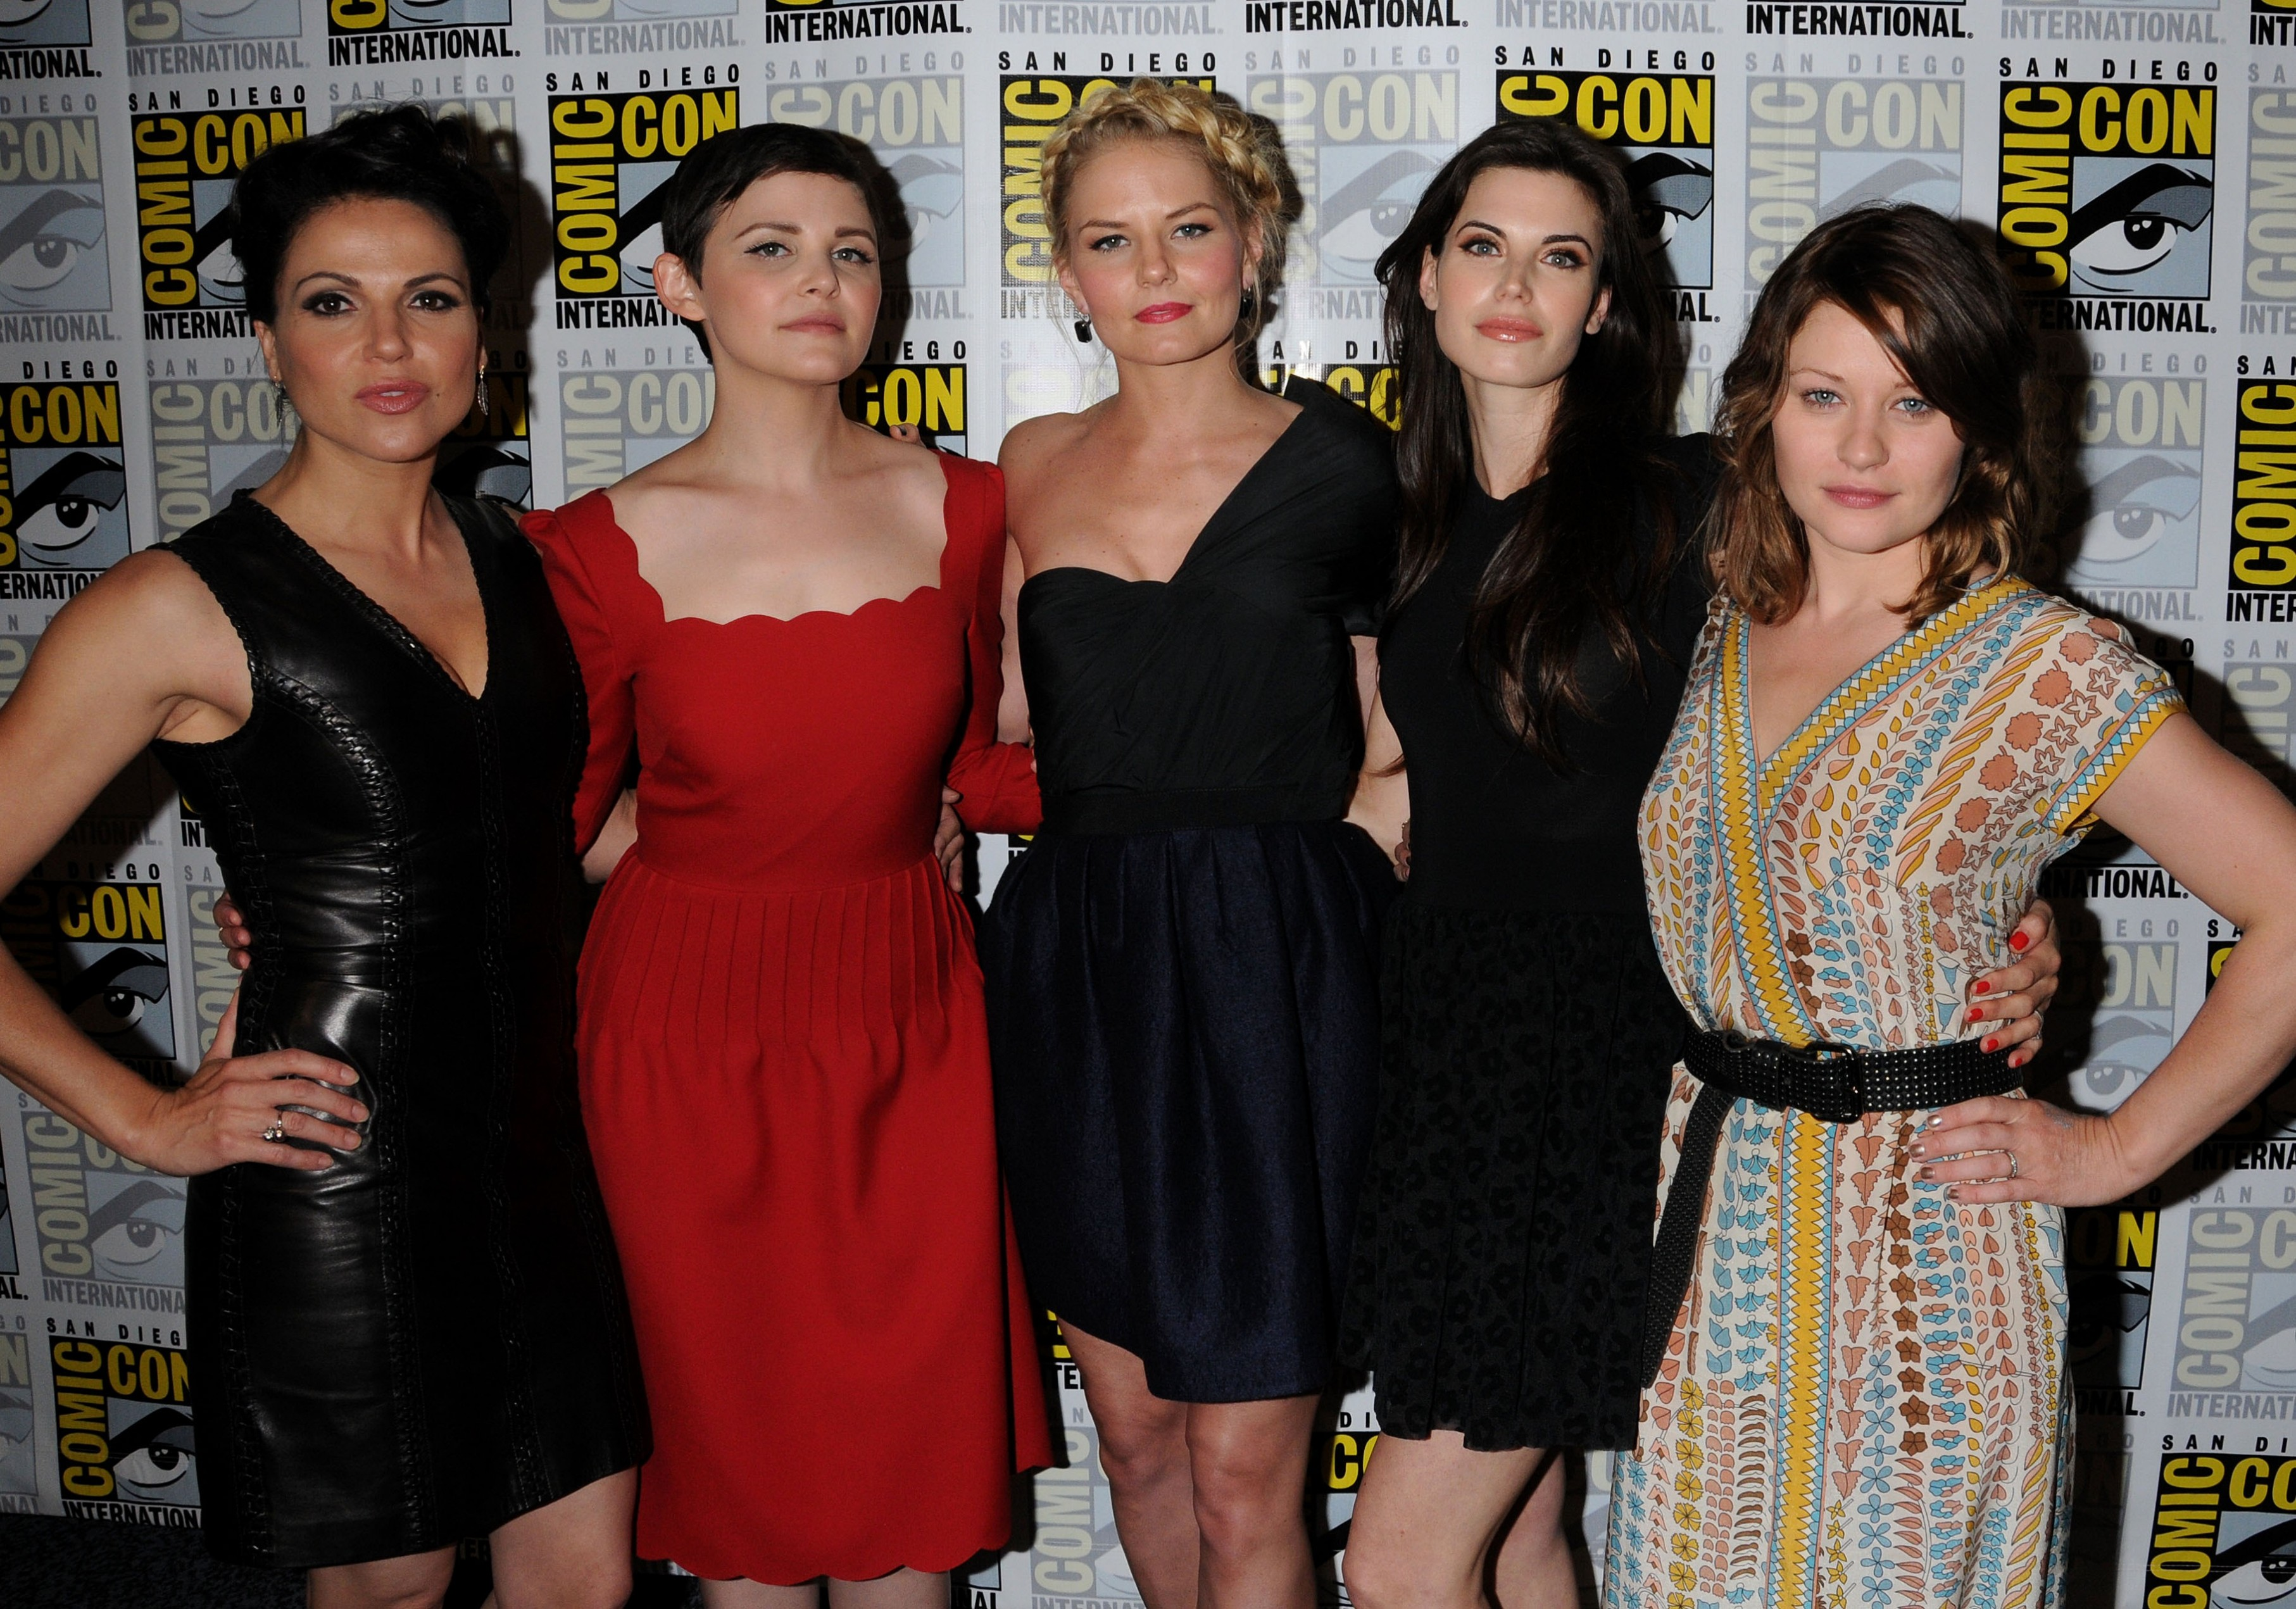 ouat ladies images ouat ladies hd wallpaper and background photos